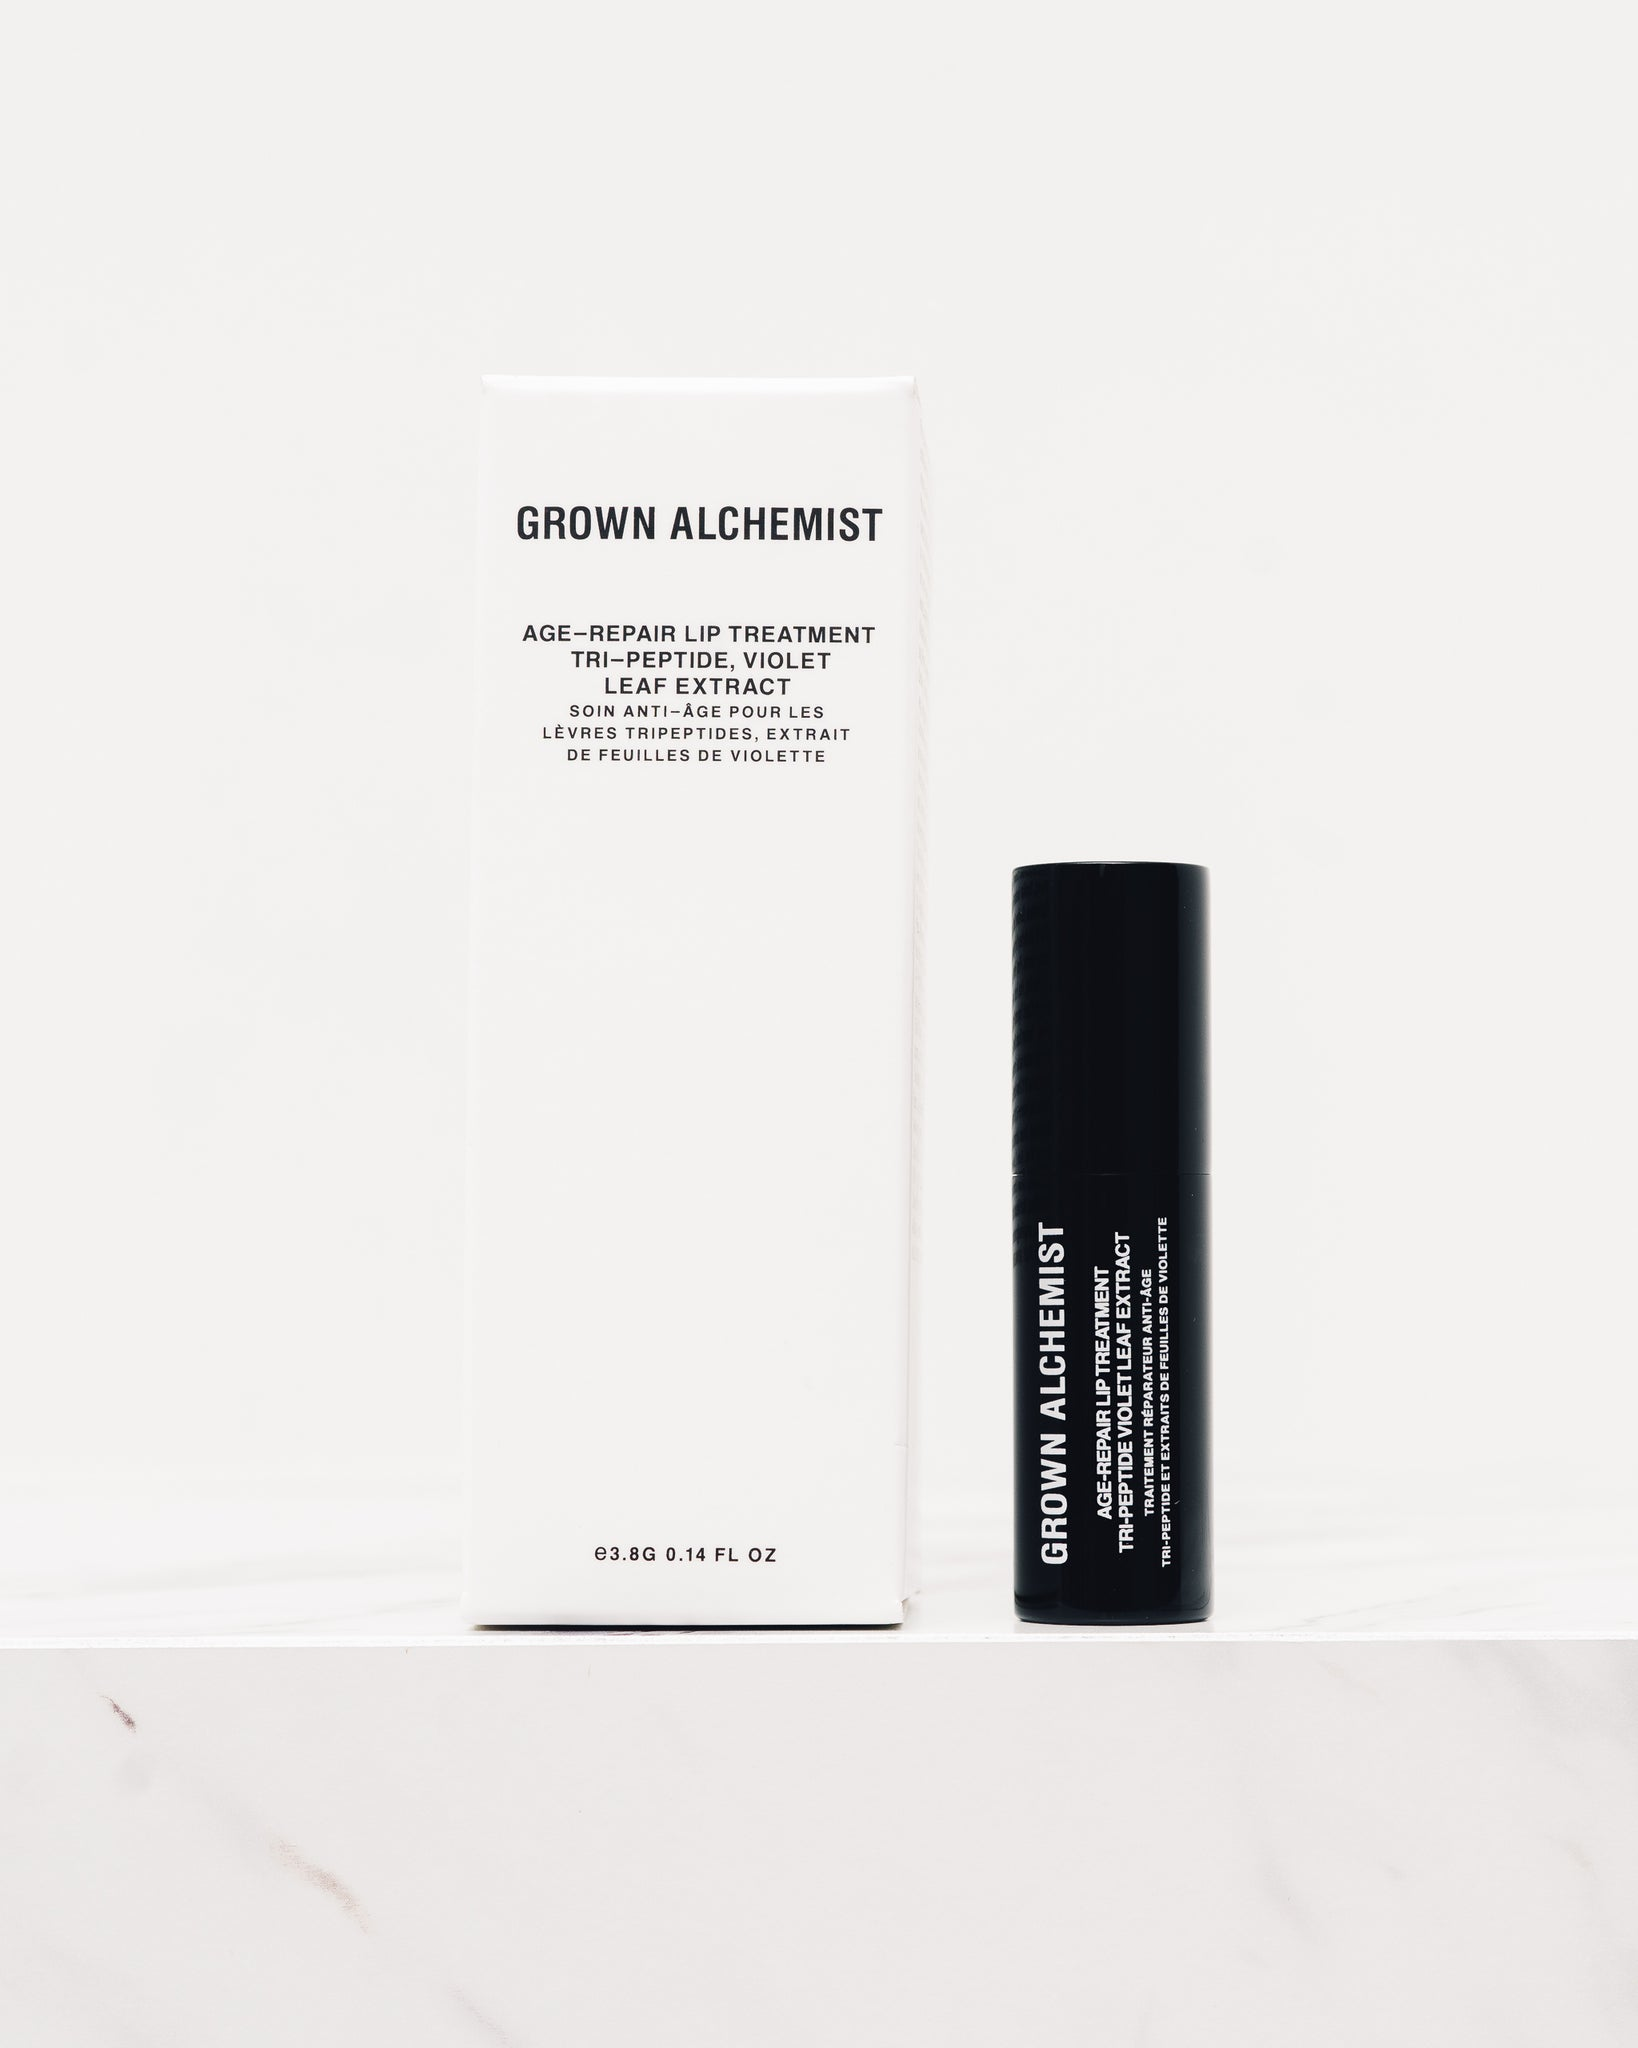 Grown Alchemist Age Repair Lip Treatment